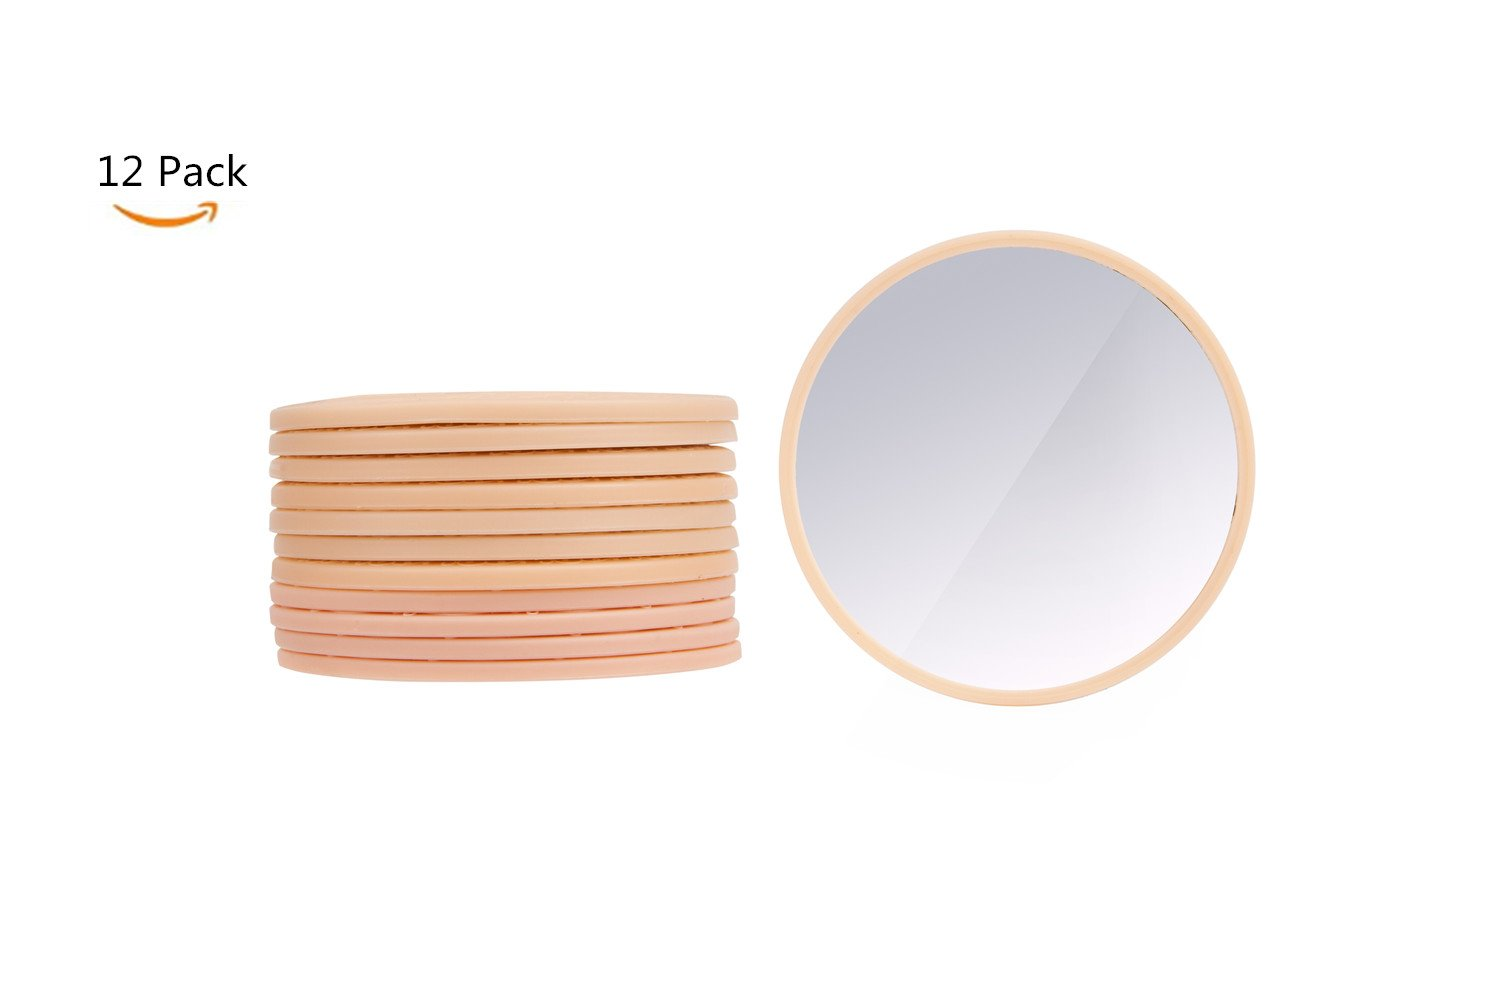 NCToys Compact Mirrors Bulk Small Gift Perfect for Purses 2.5 Inch Round Glass Mirror Random Pattern Pack of 12 Purple